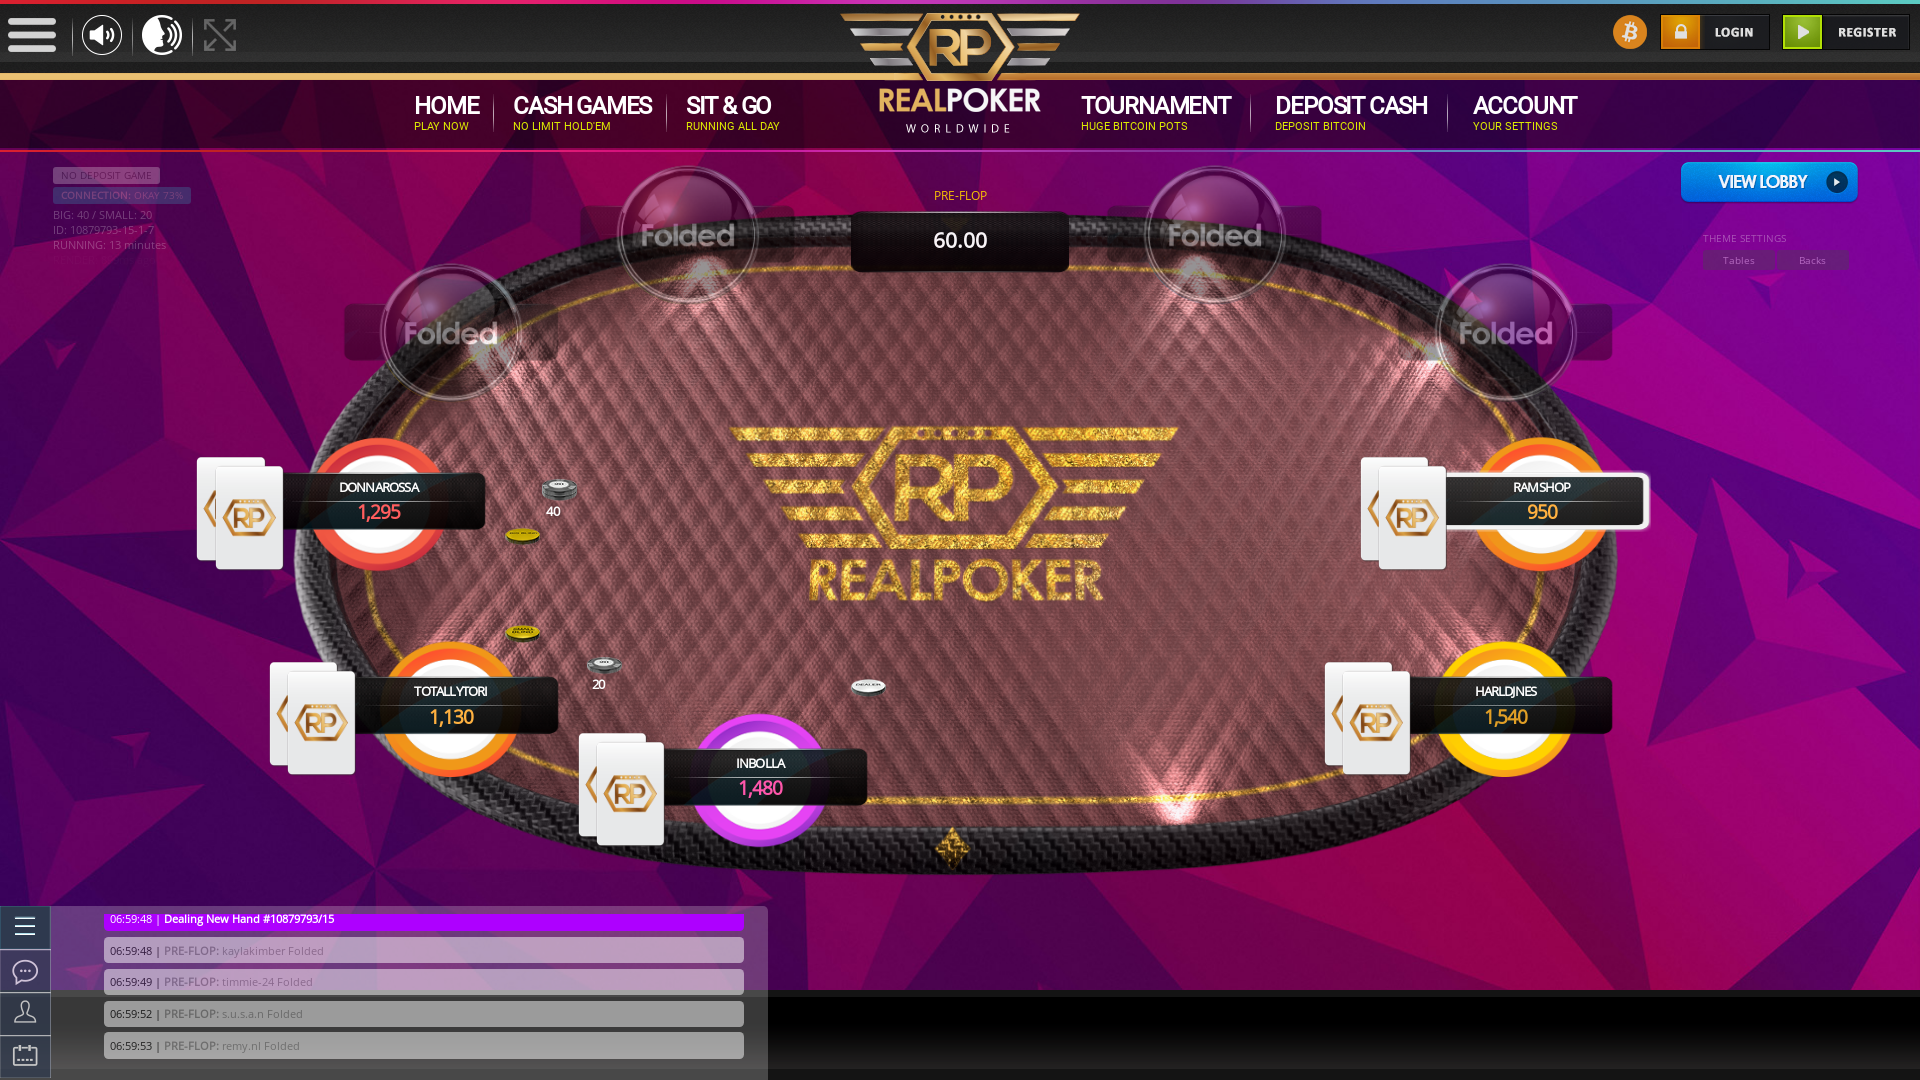 Malta BTC Poker from May